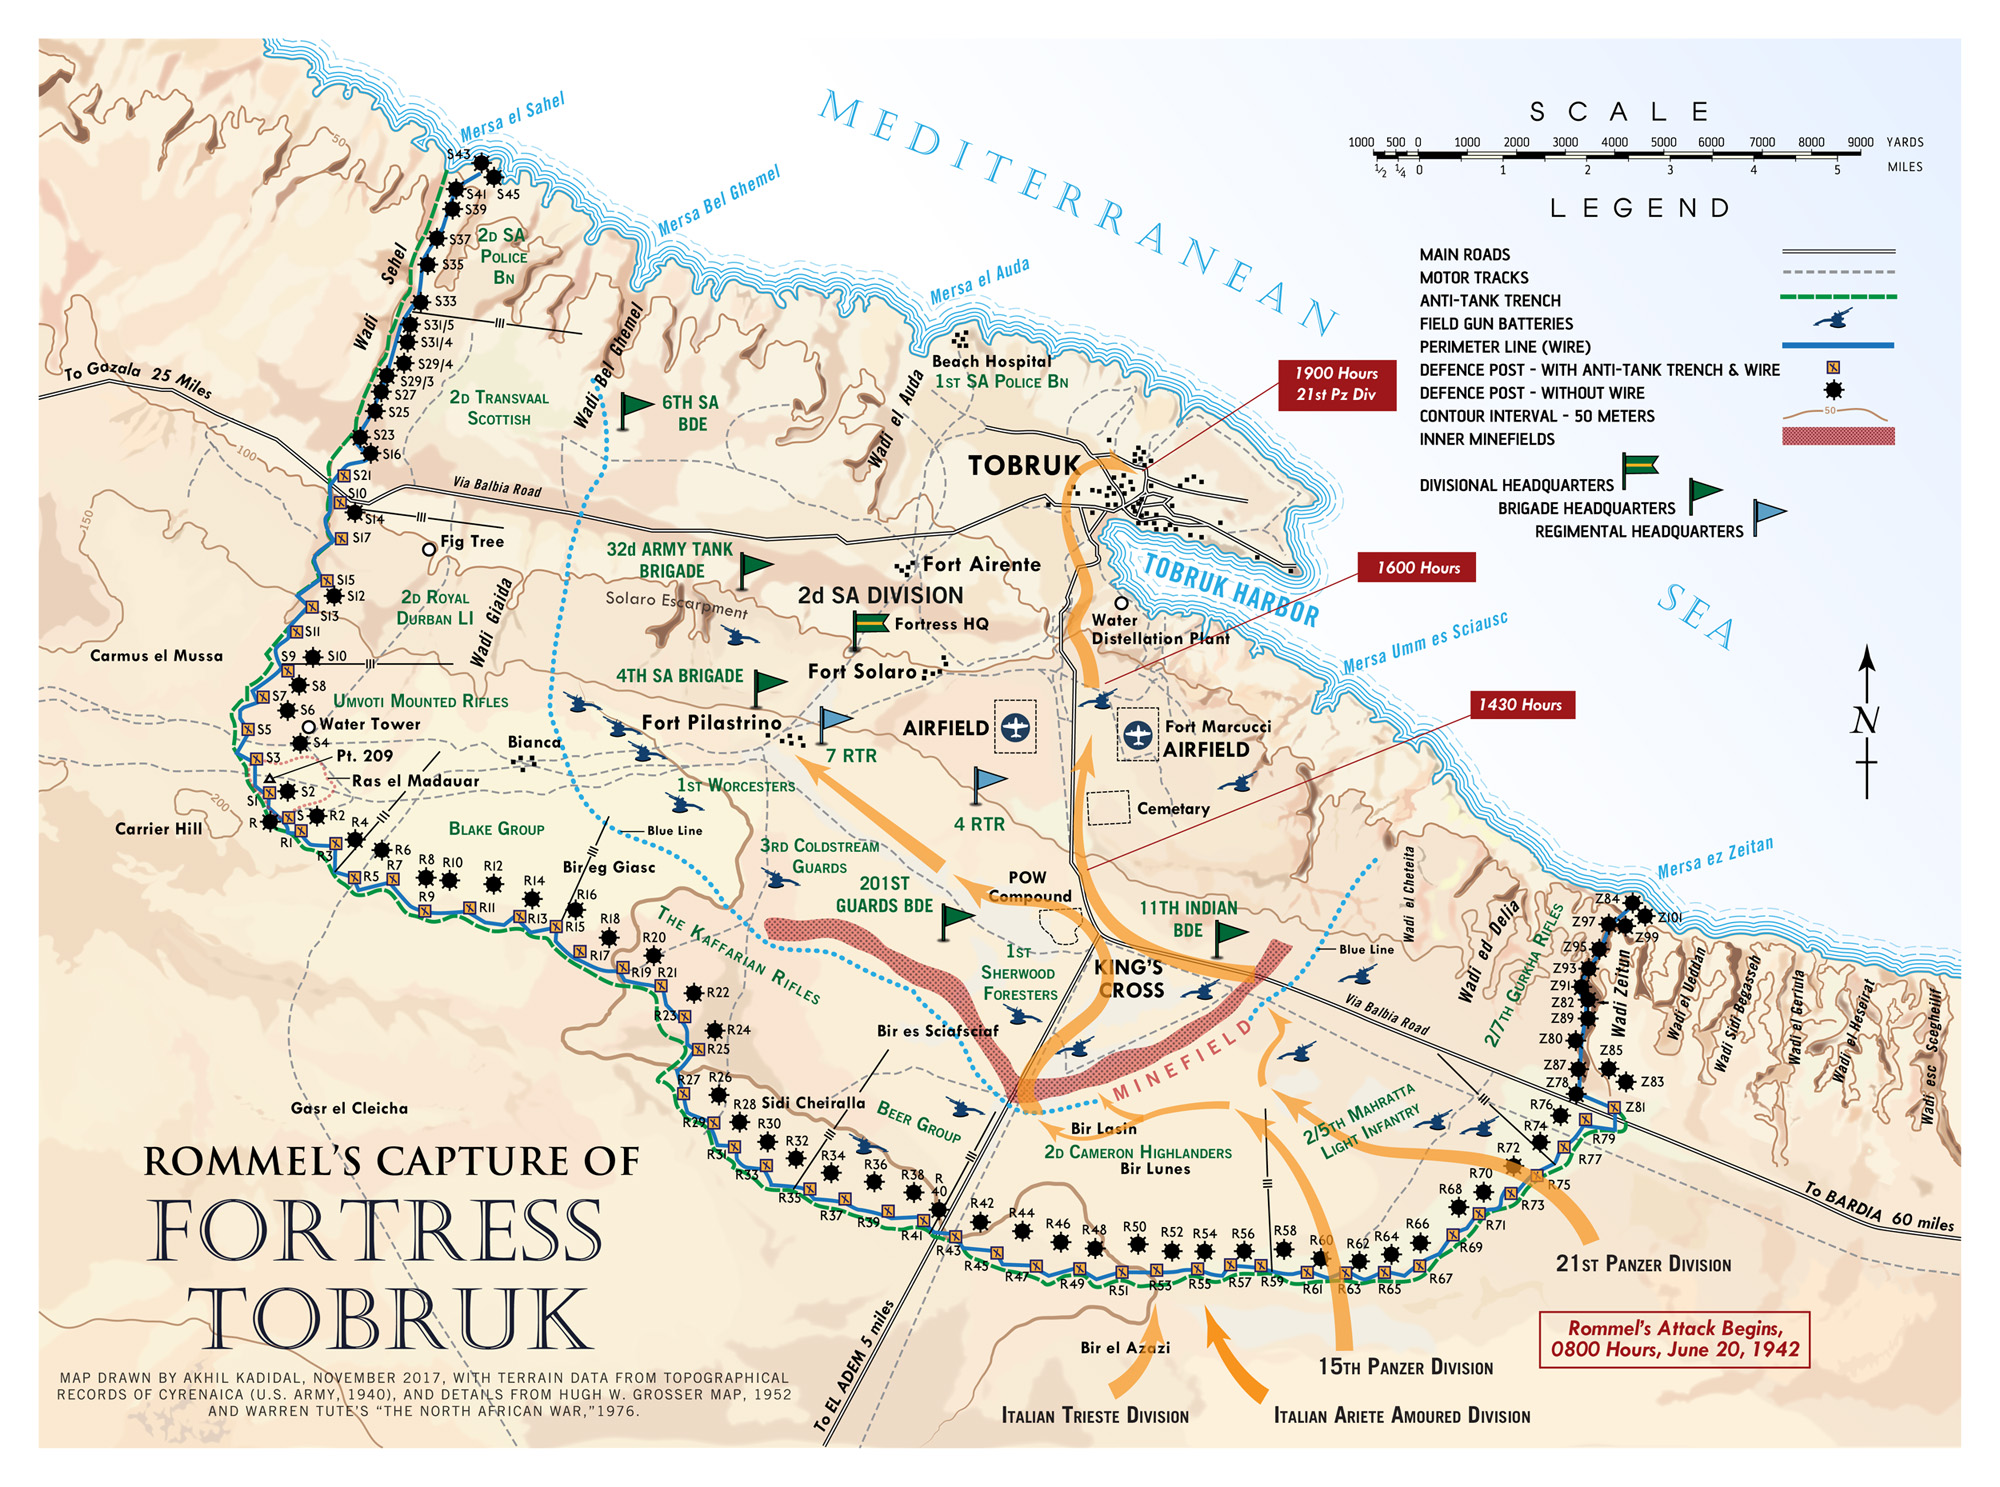 Car With Road >> The Road to Tobruk (The North African Campaign, 1940-1942) | Hermes' Wings